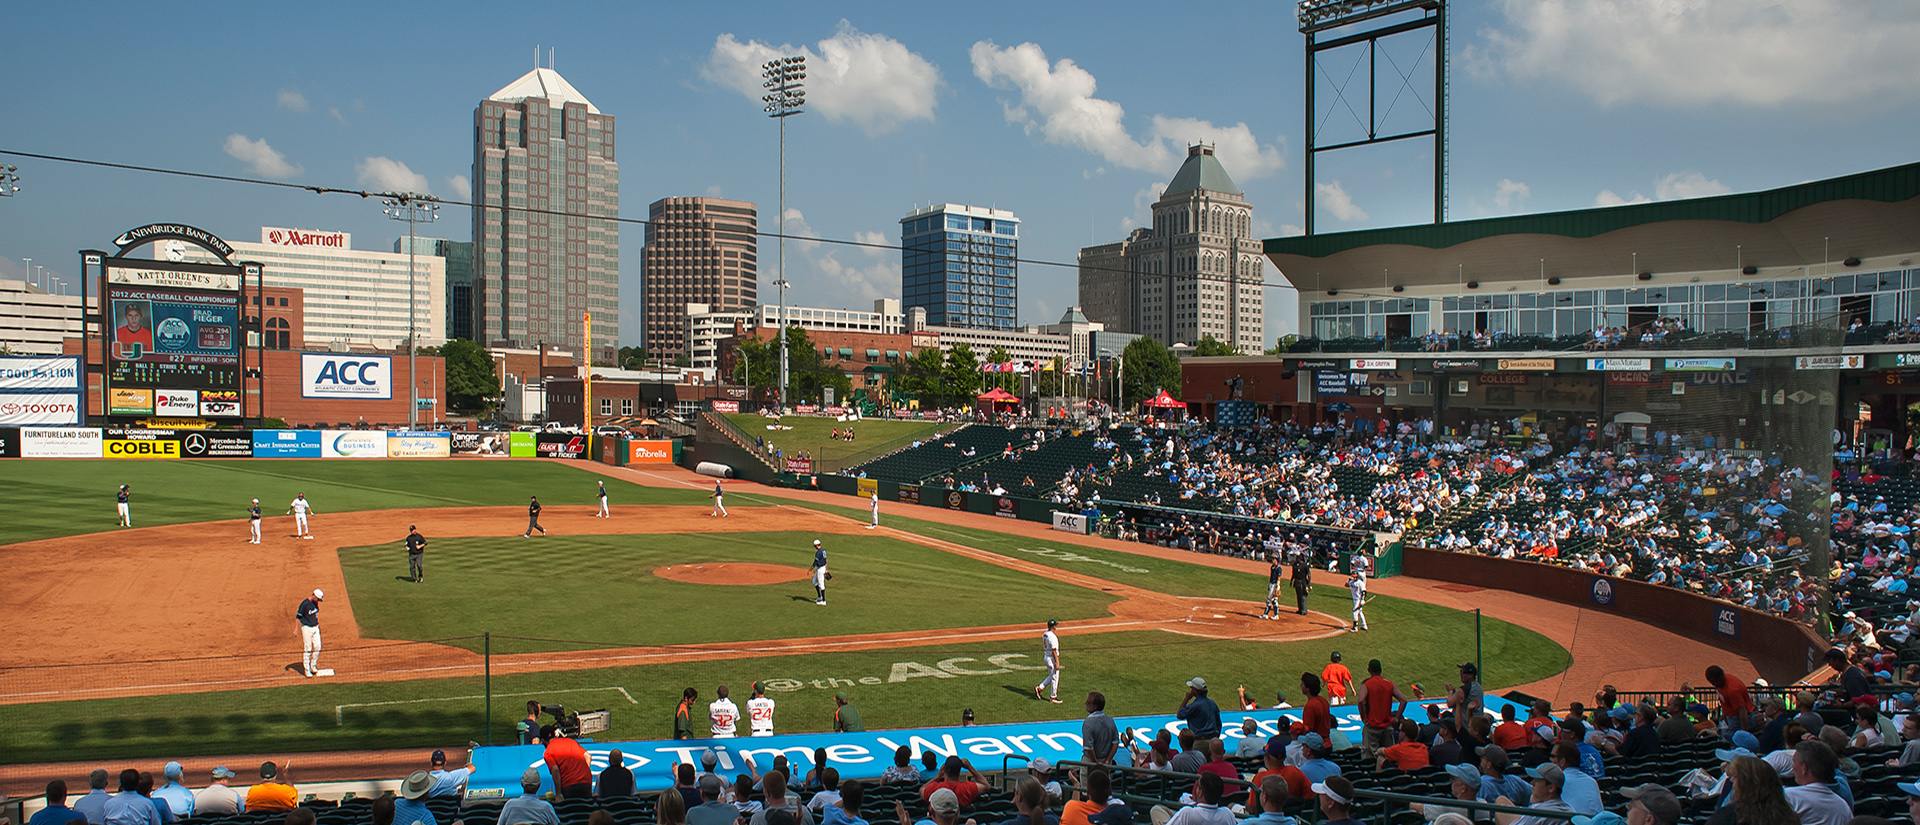 Greensboro baseball stadium